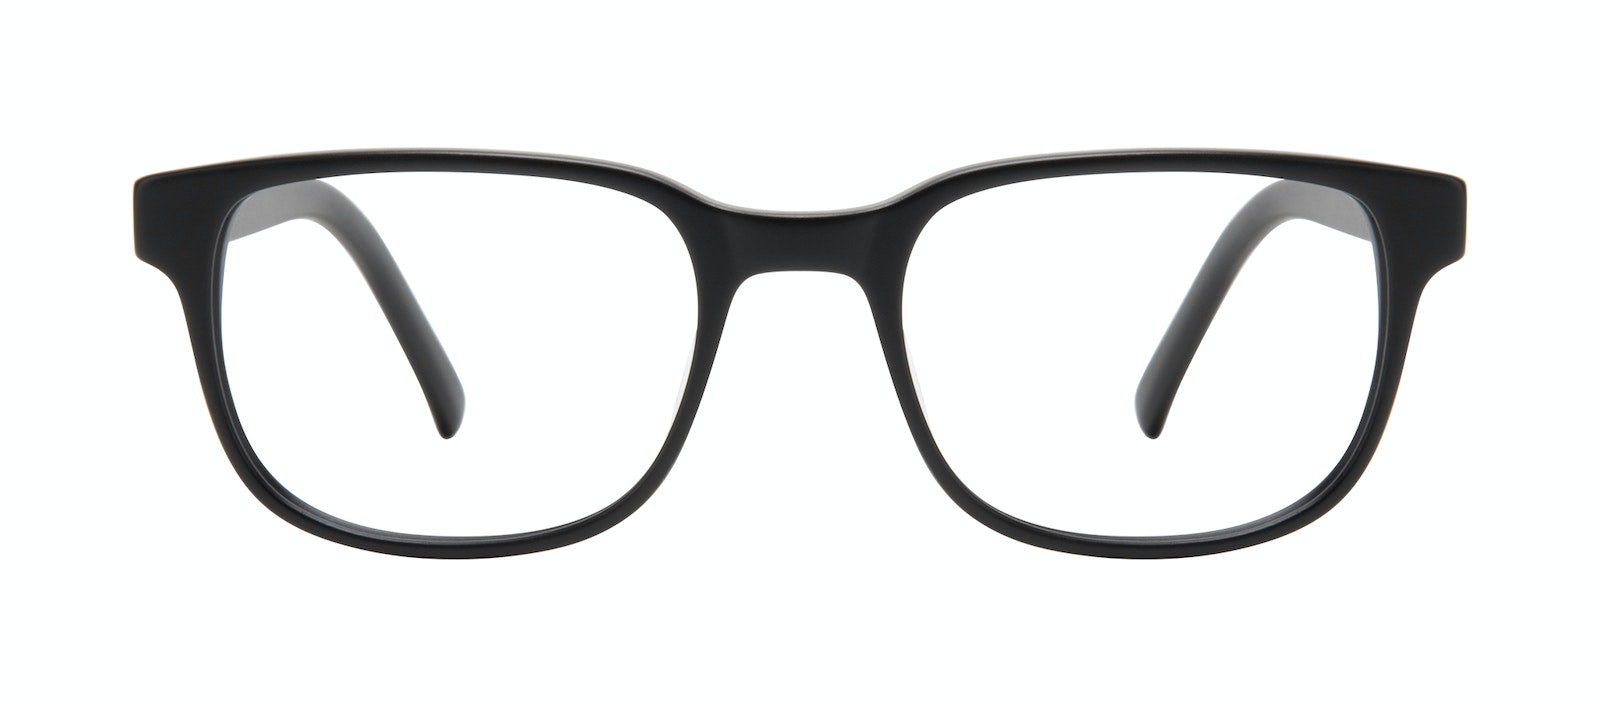 Affordable Fashion Glasses Square Eyeglasses Men Role Black Matte Front